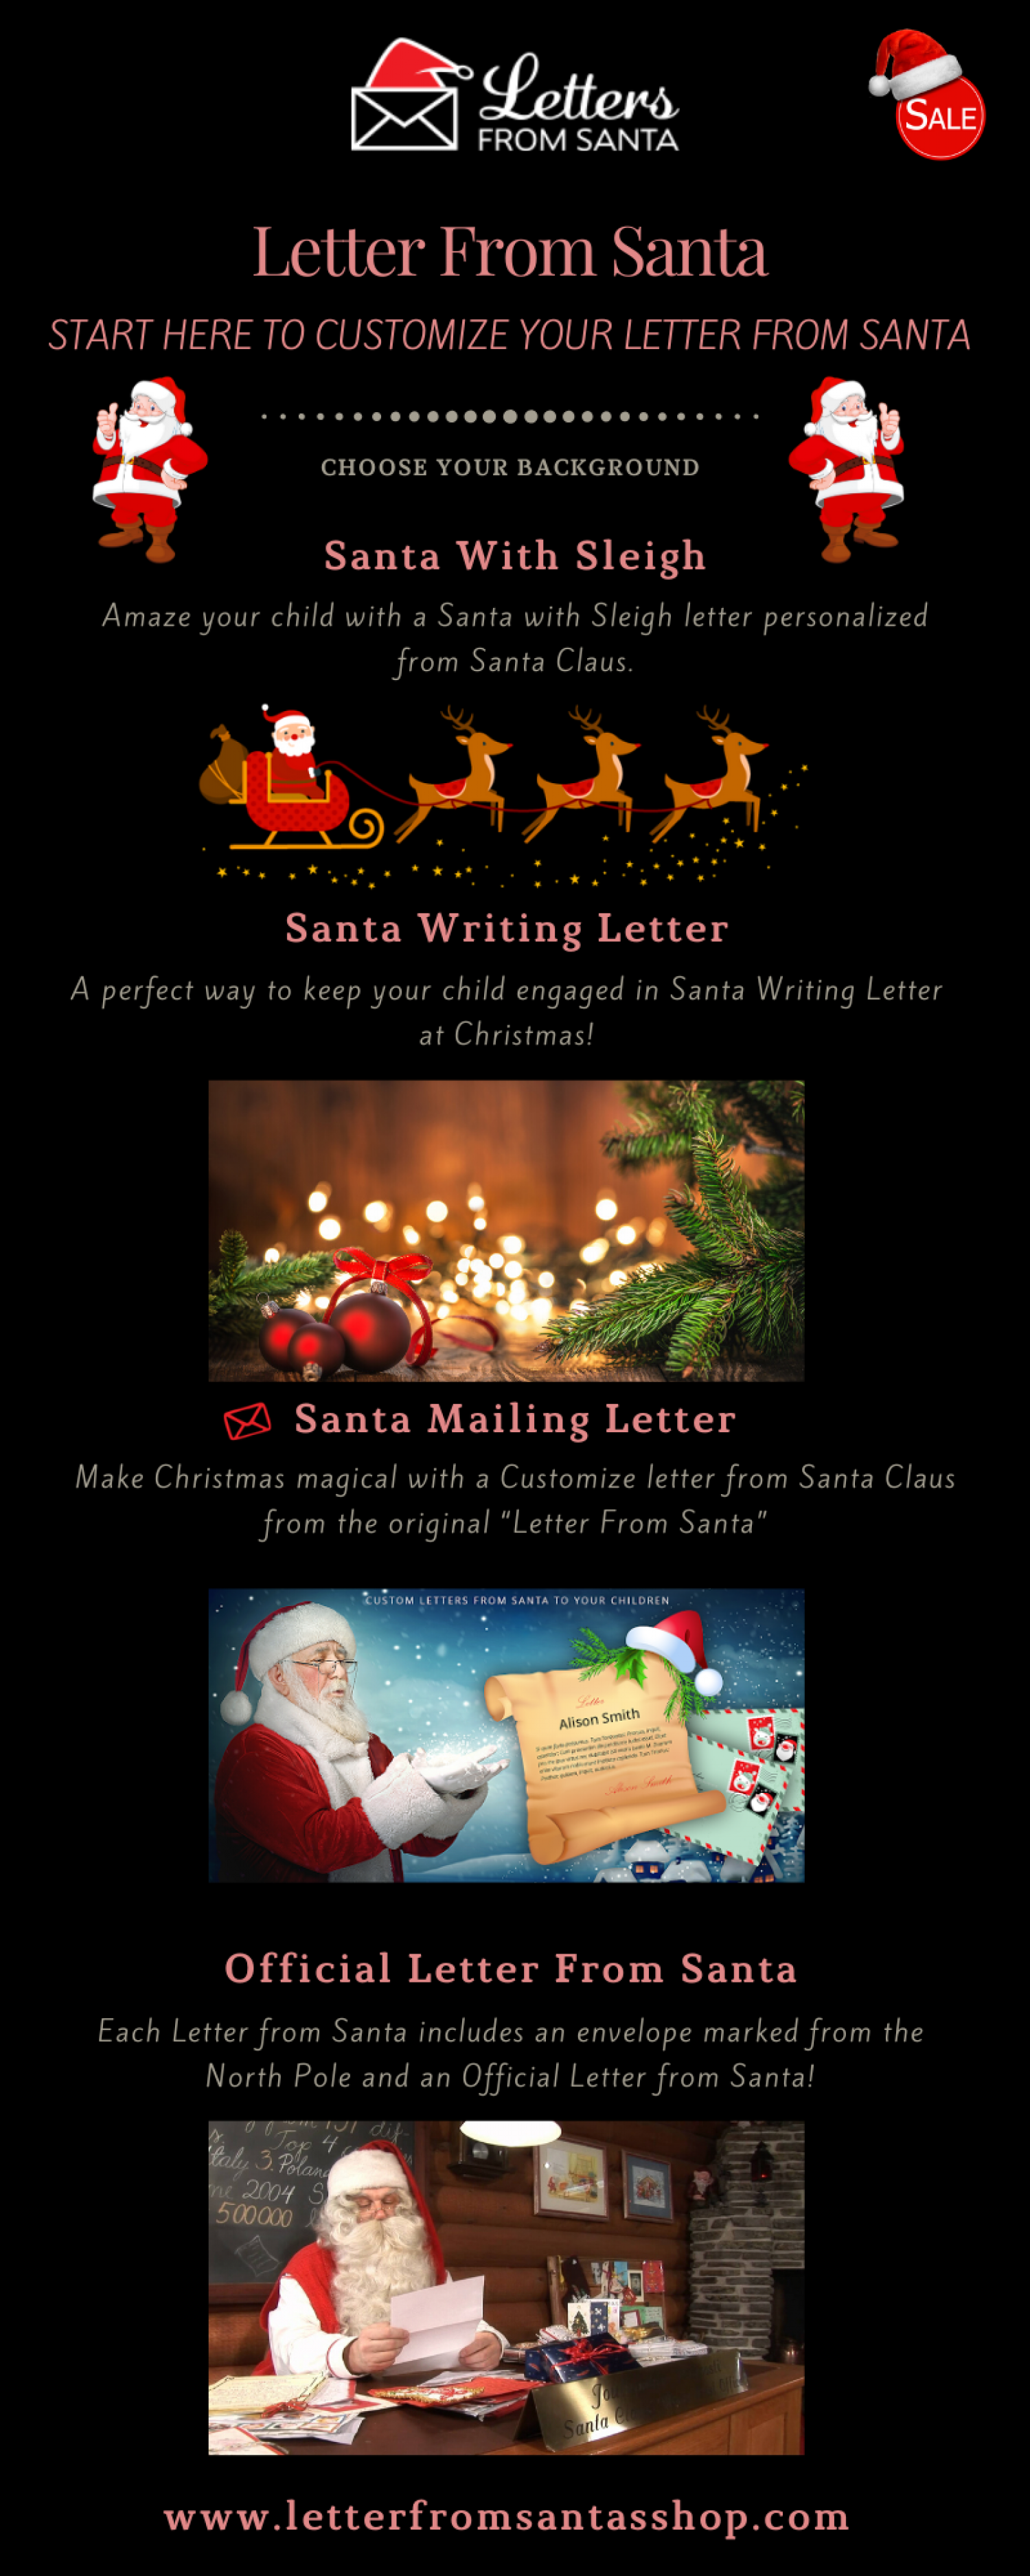 Customized Santa letters from North Pole Infographic